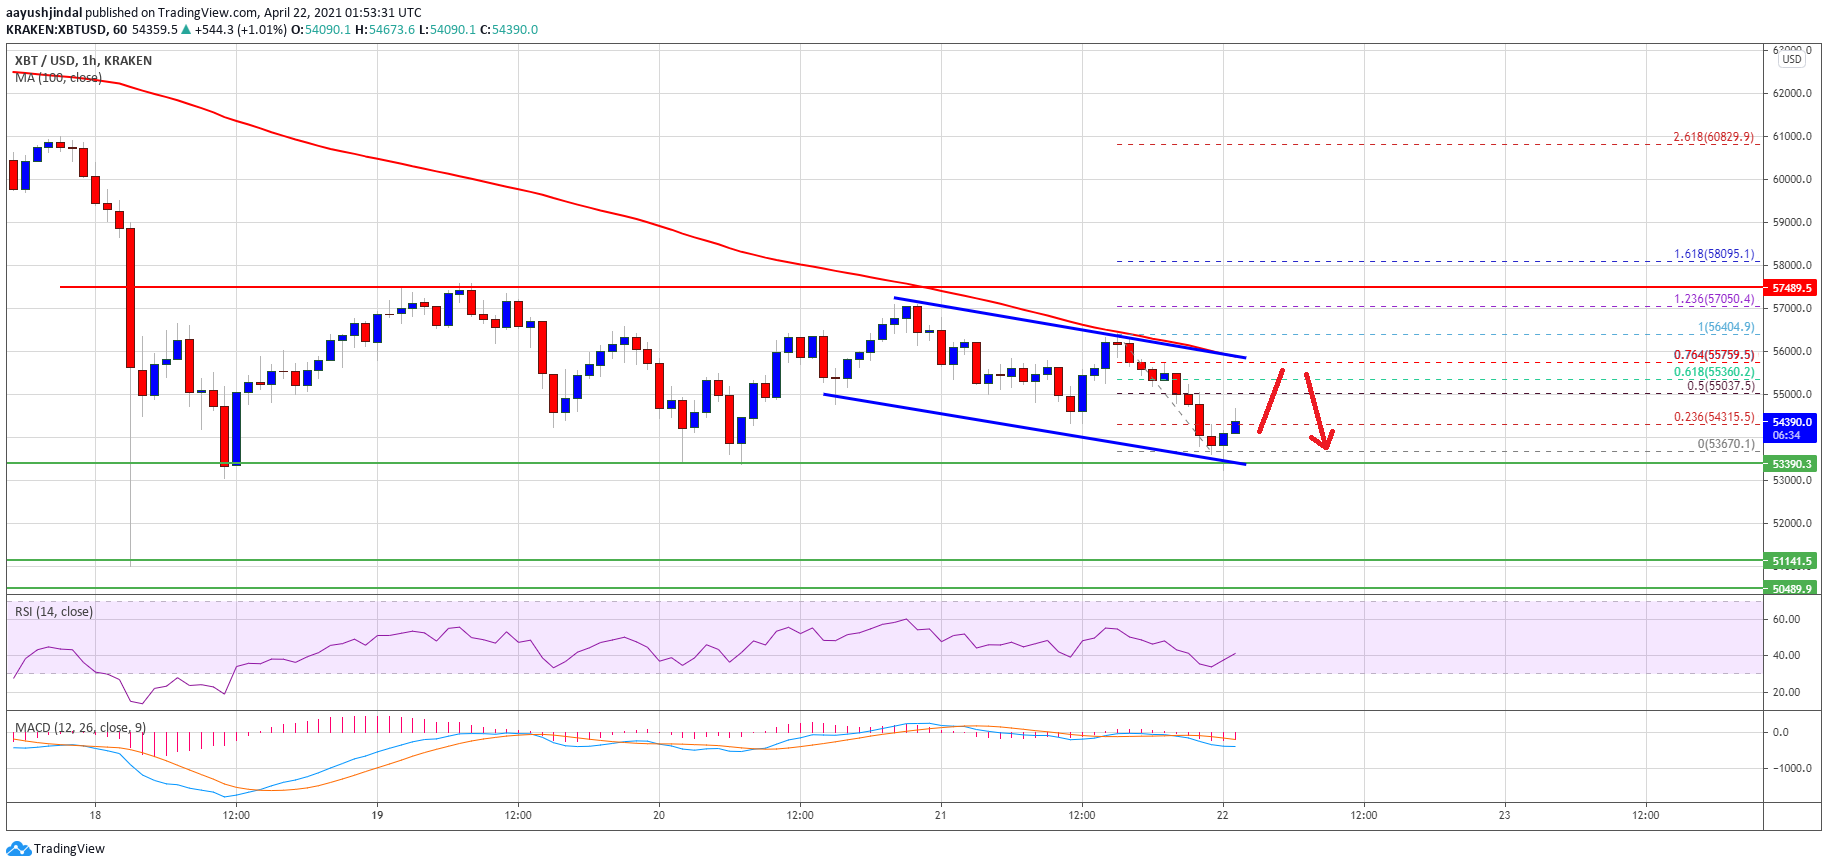 TA: Bitcoin Stuck in Range, Here's What Could Trigger More Losses